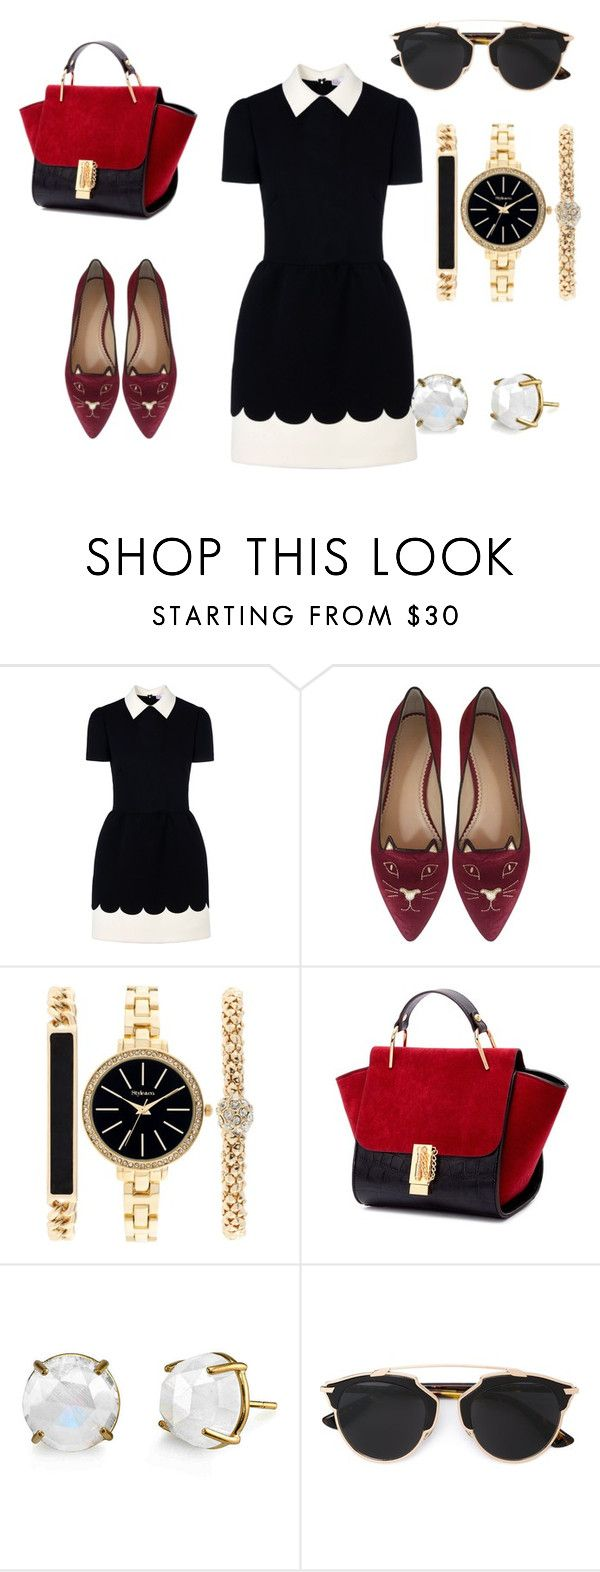 My preppy style by Mimi by mokatsanemk on Polyvore featuring RED Valentino, Charlotte Olympia, Style & Co., Christian Dior, women's clothing, women's fashion, women, female, woman and misses